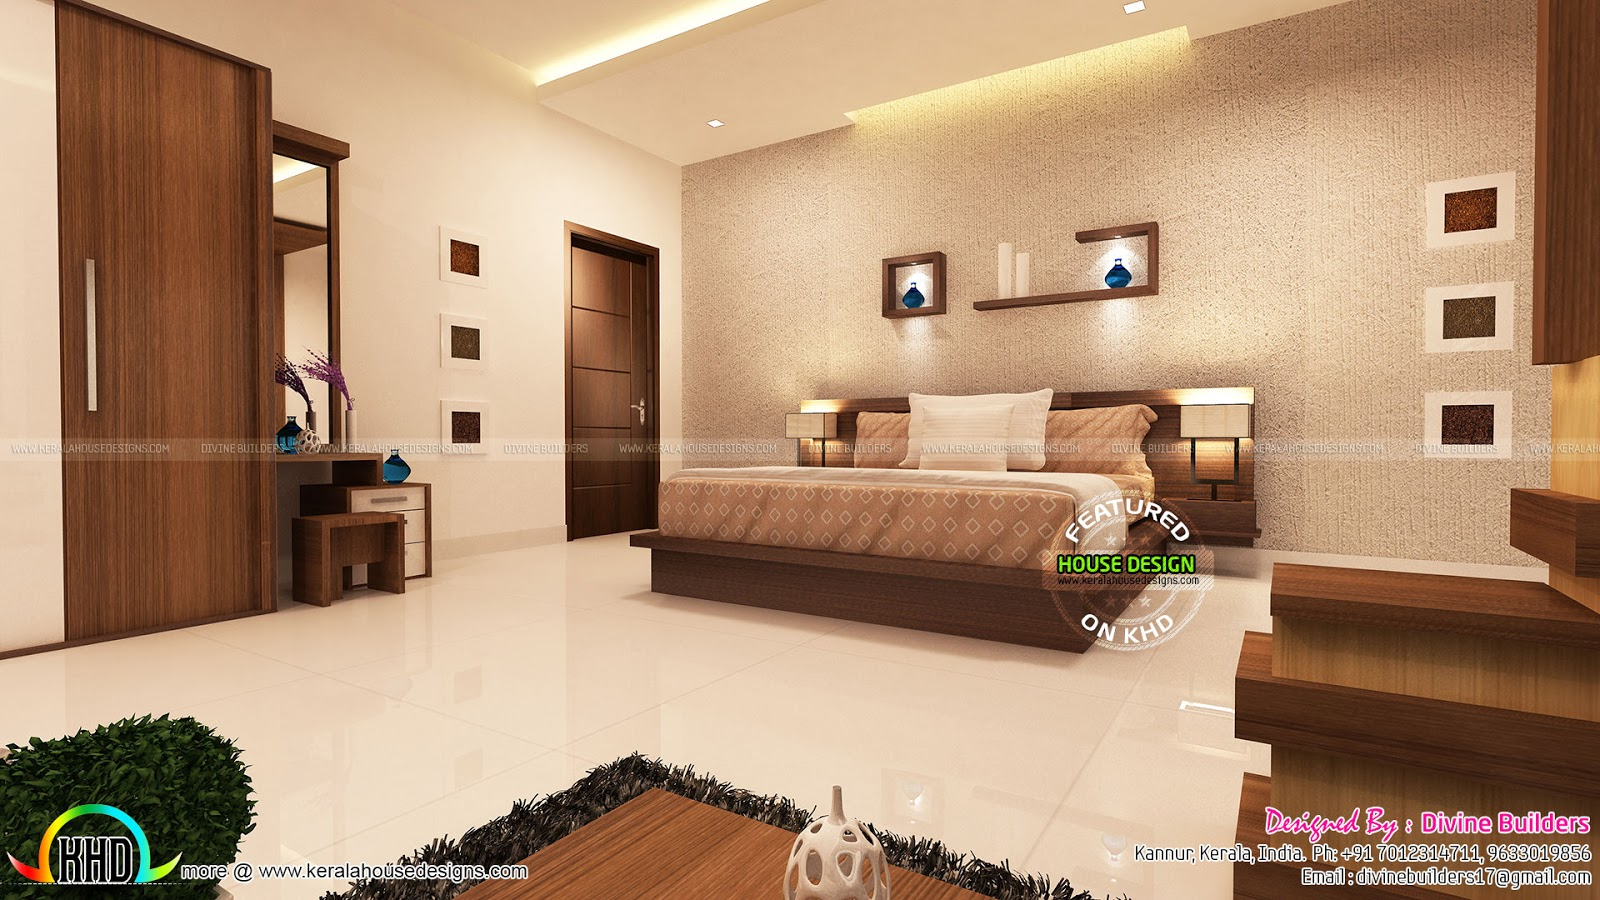 Master Bedroom And Living Room Interior Kerala Home Design And Floor Plans